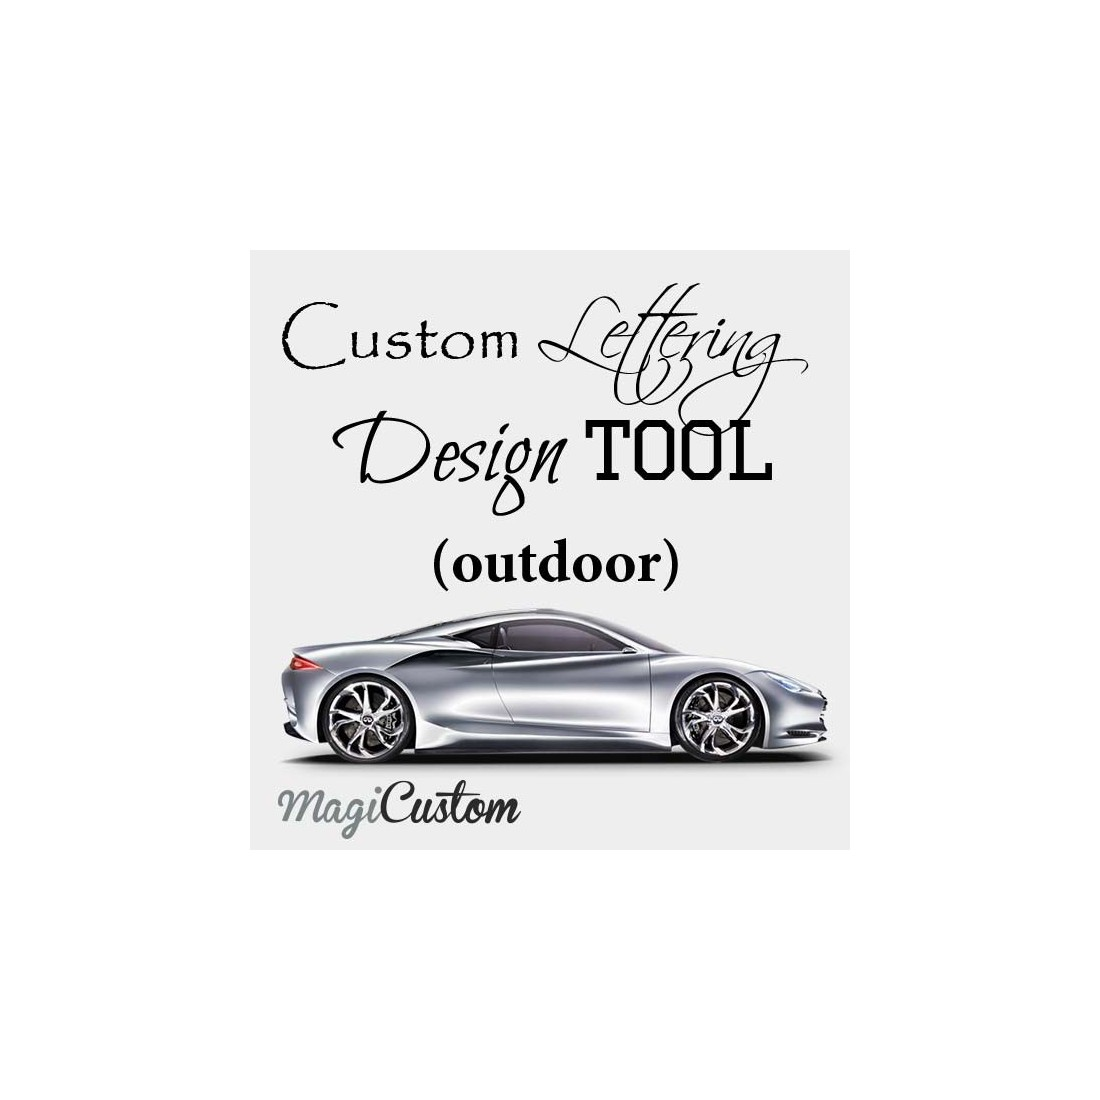 Create Custom Car Vinyl Decals Stickers Online Without Background - How to make your own car decals at home